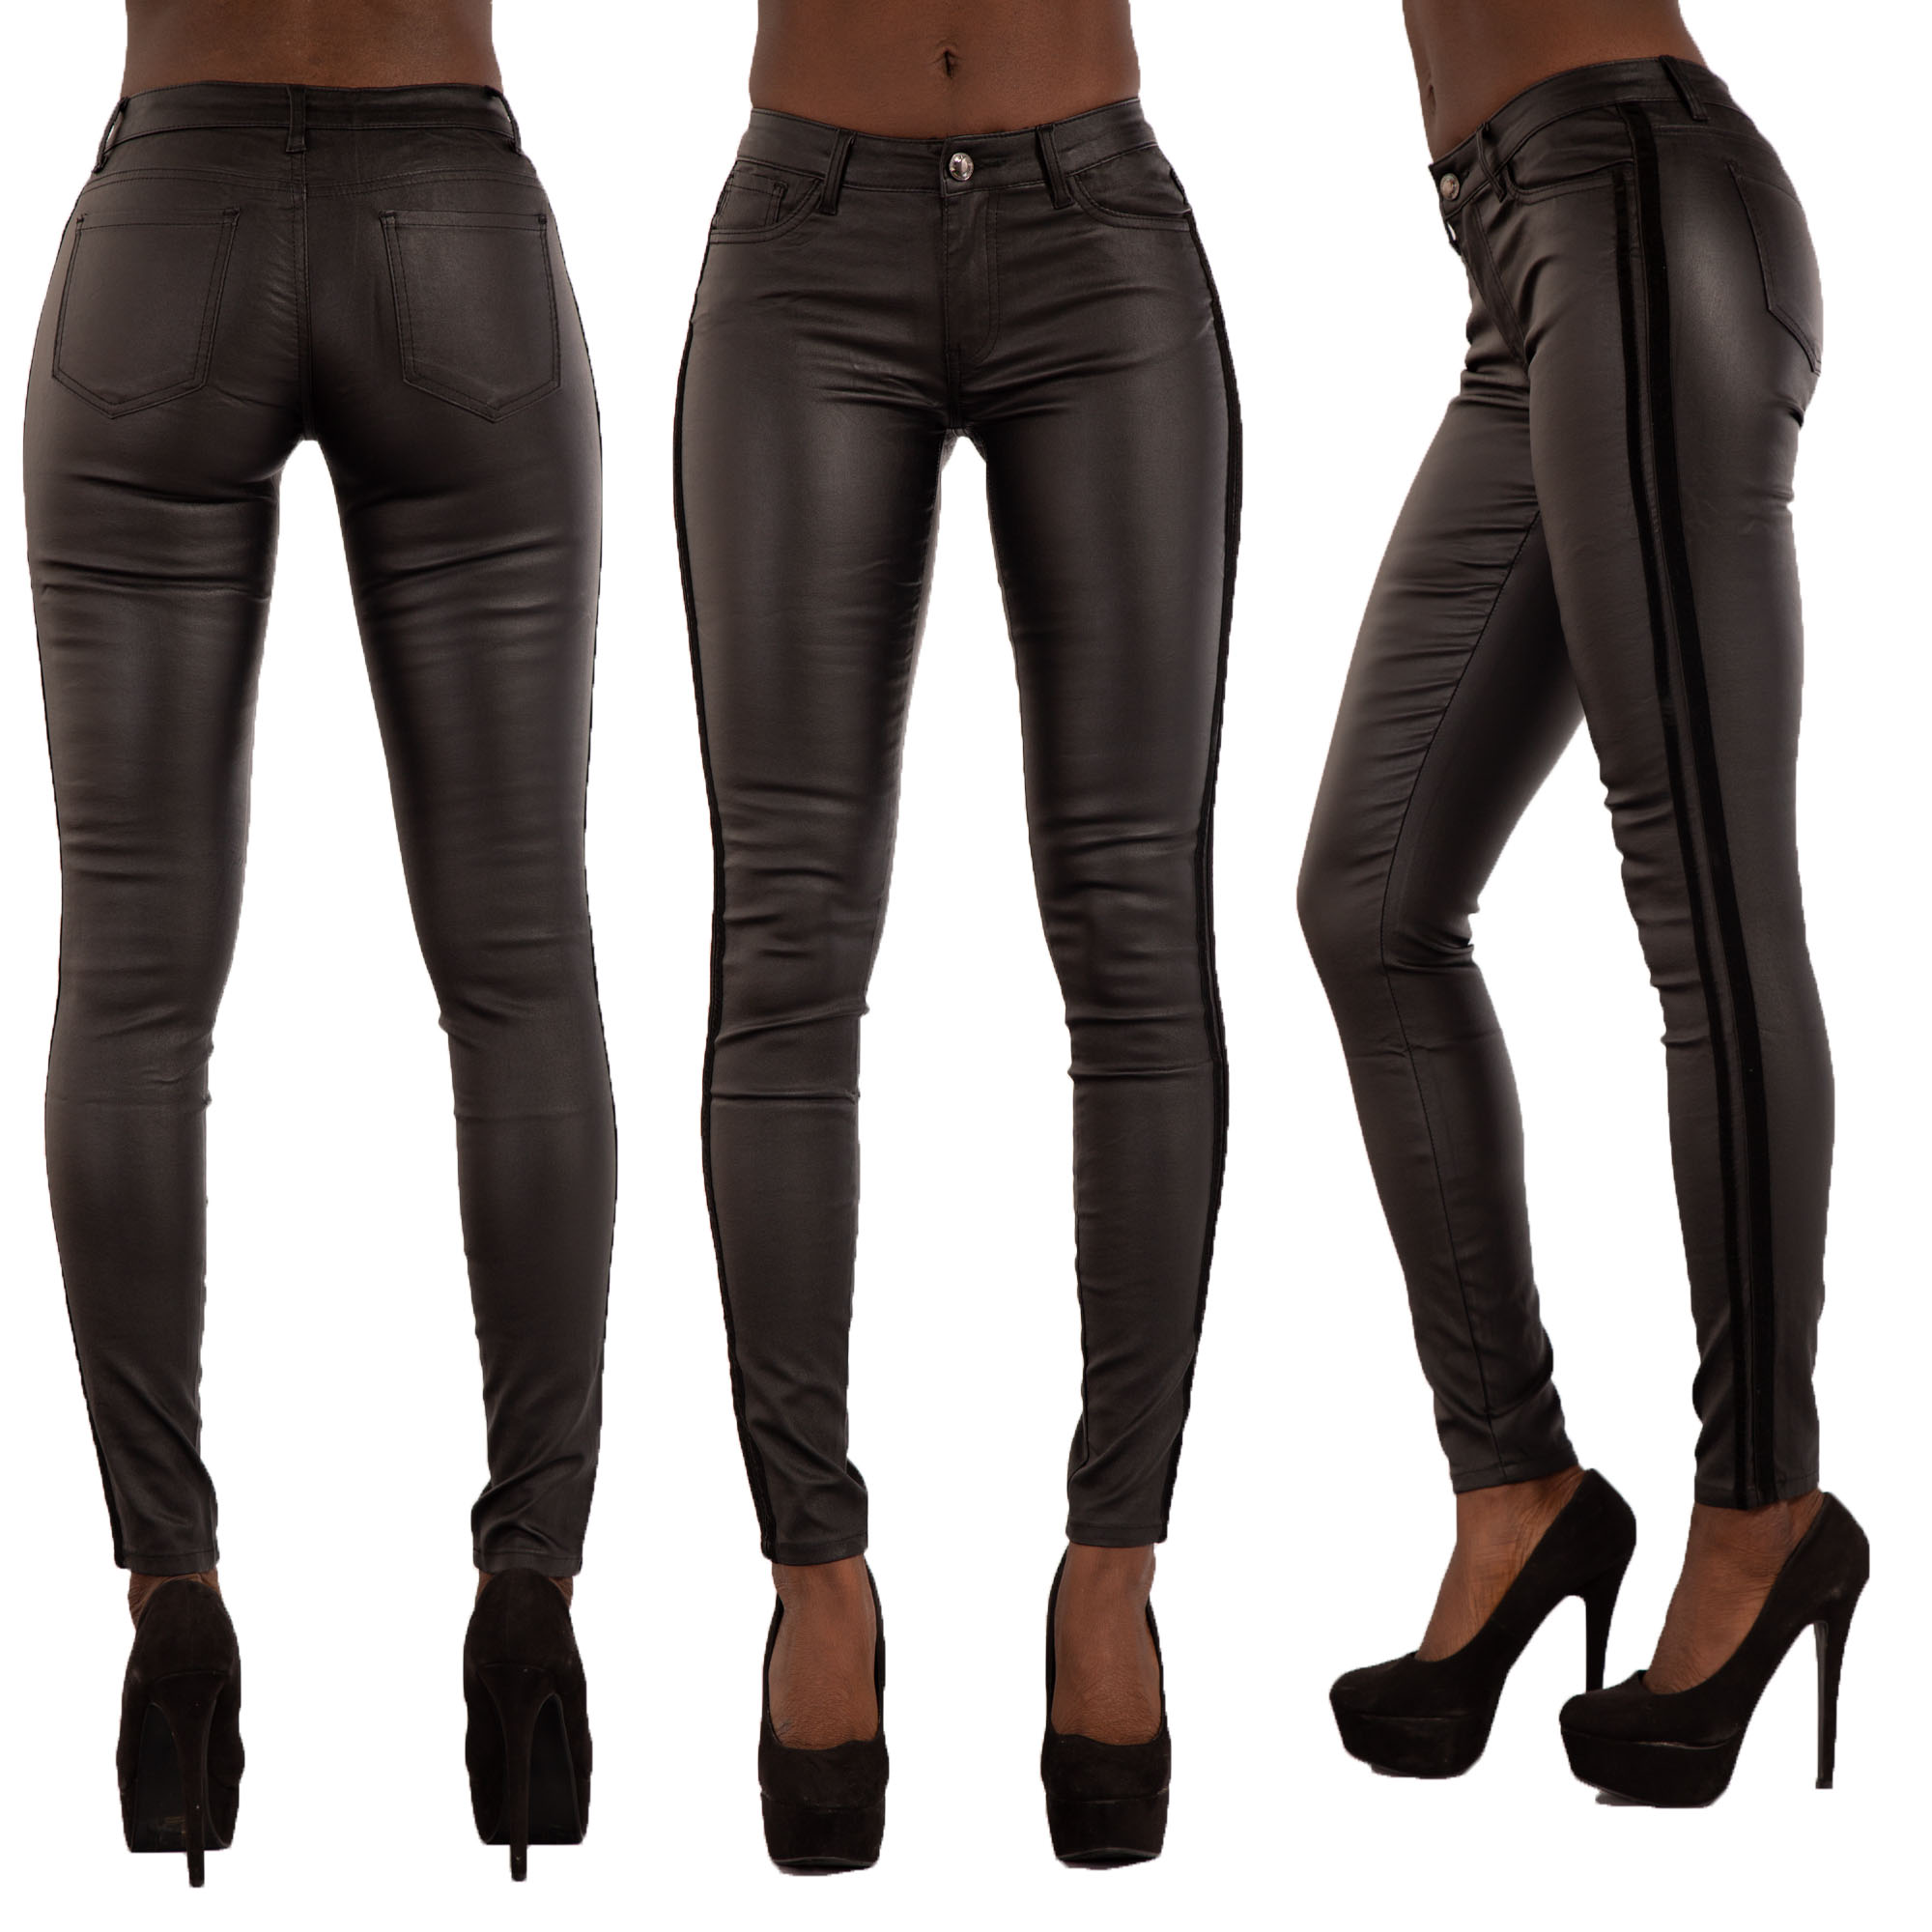 deft design search for genuine hot product Details about Womens Leather Look Trousers ladies Wet Look Leggings Skinny  Pants Size 6-16